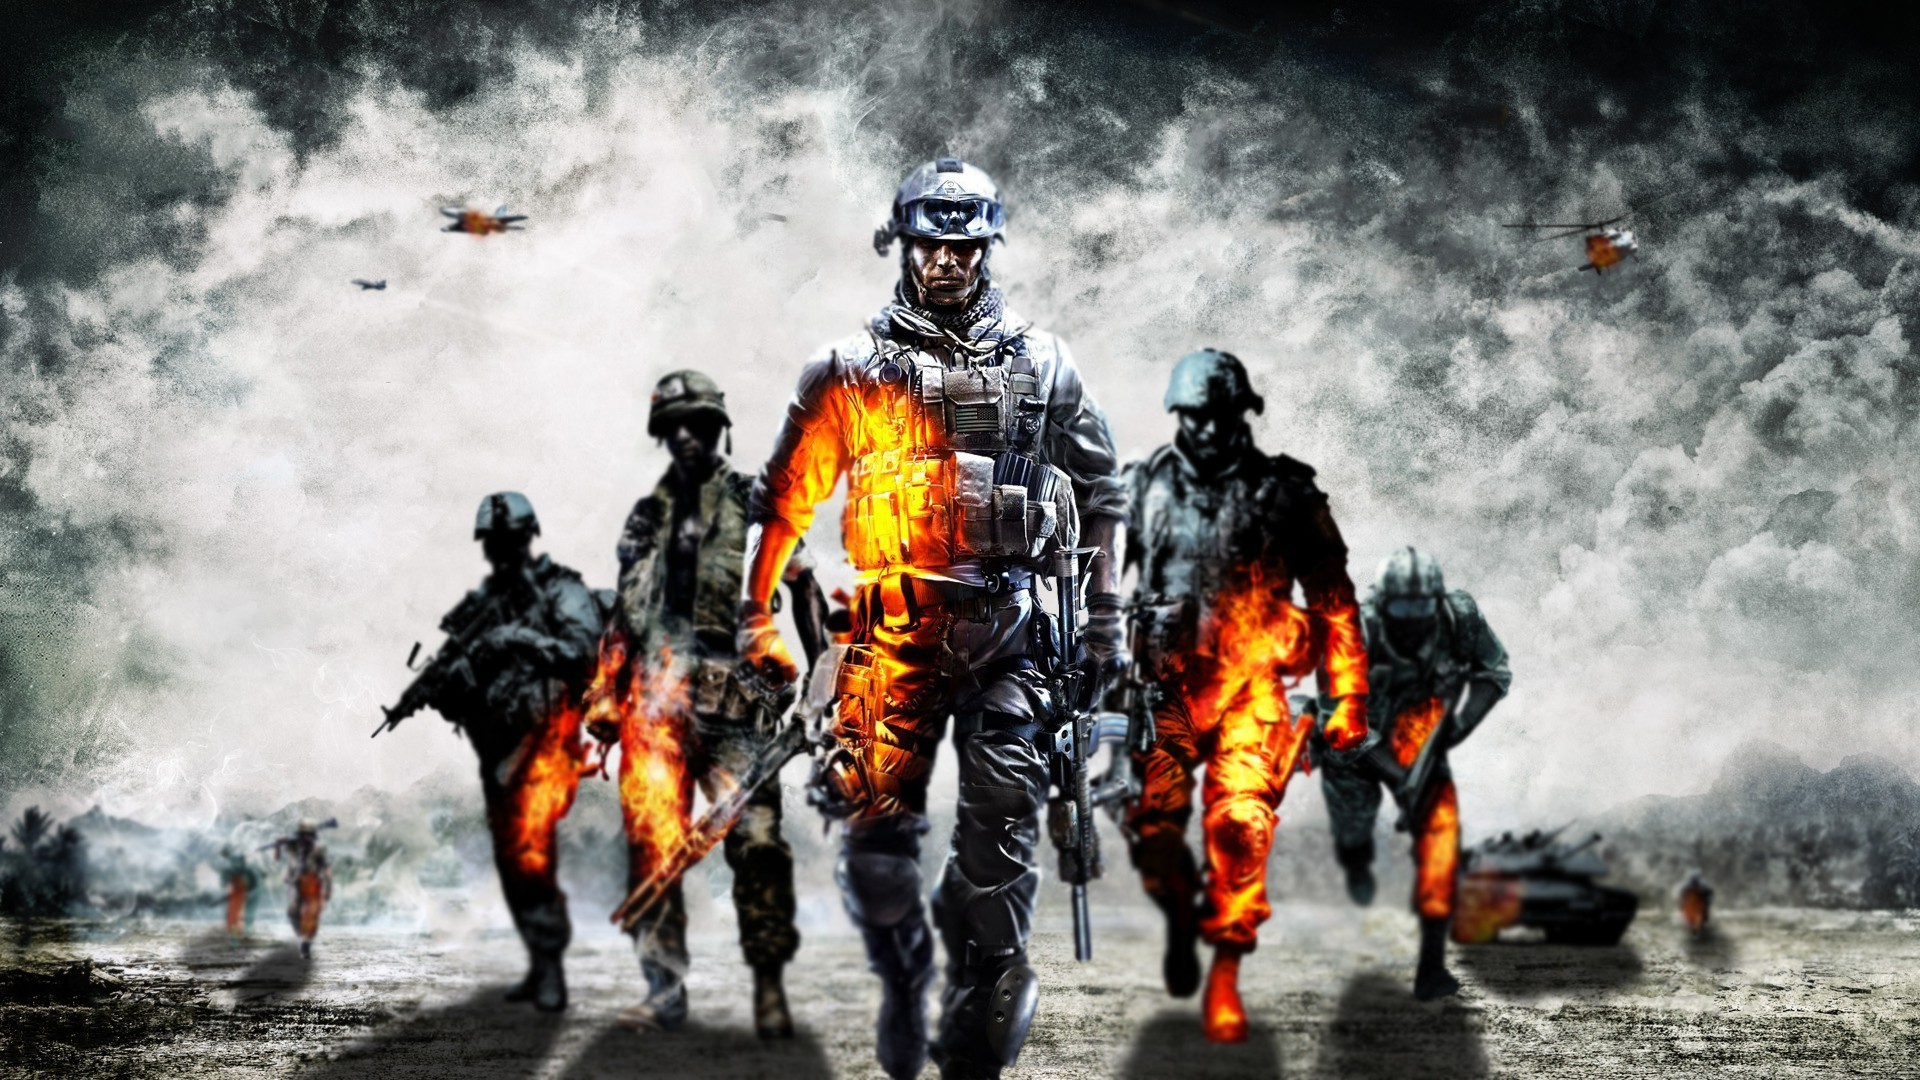 battlefield 4 wallpaper background desktop